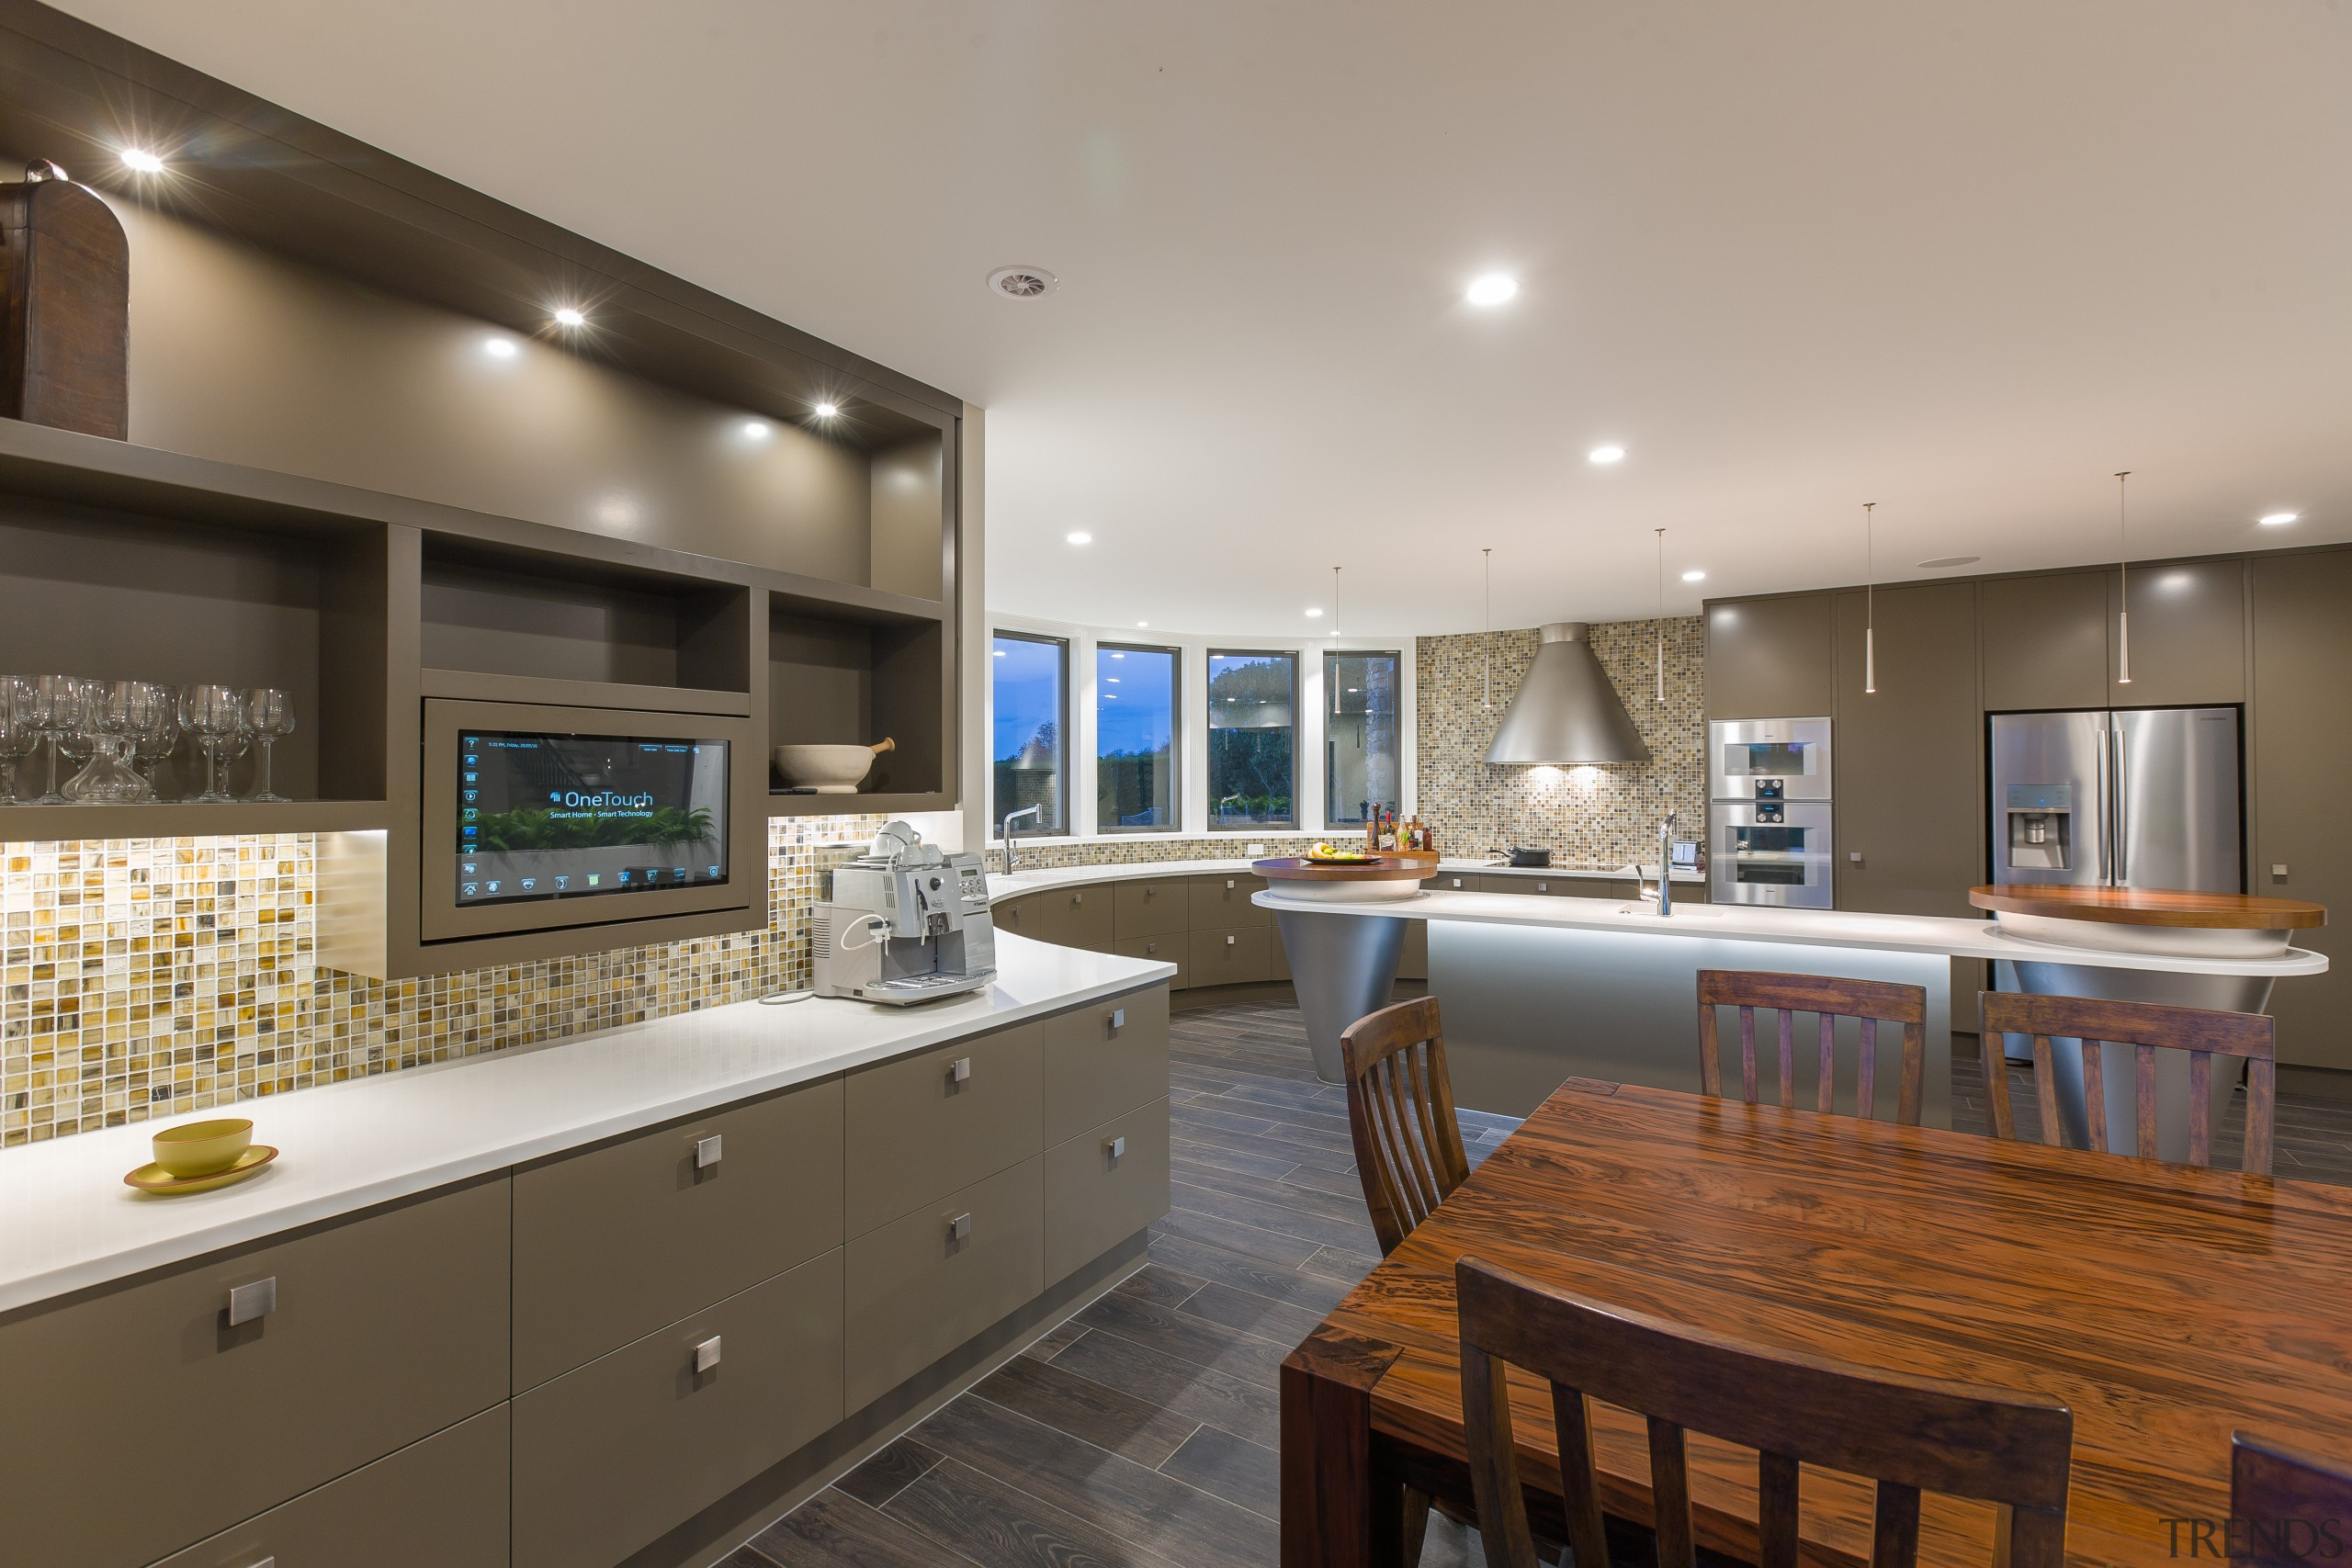 Undercounter storage abounds in this expansive kitchen, including cabinetry, countertop, interior design, kitchen, real estate, room, gray, brown